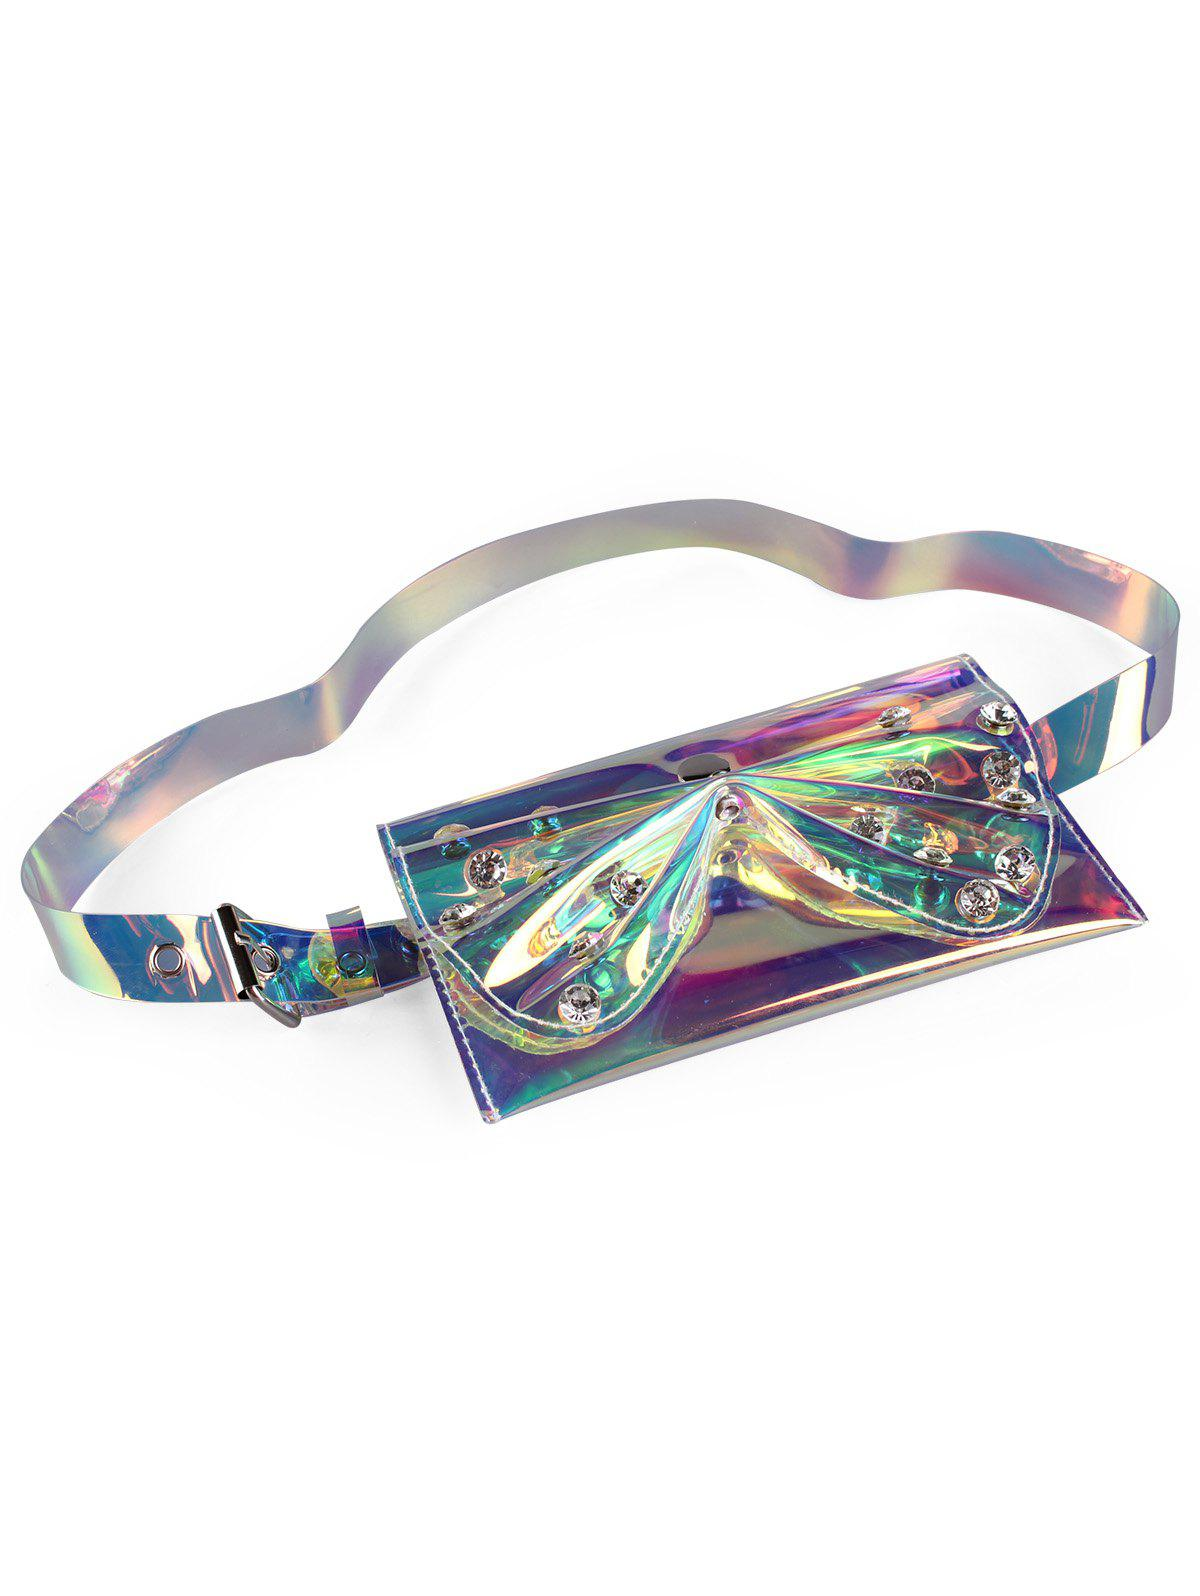 Stylish Rhinestone Bowknot Funny Bag Jelly Belt Bag - multicolor A